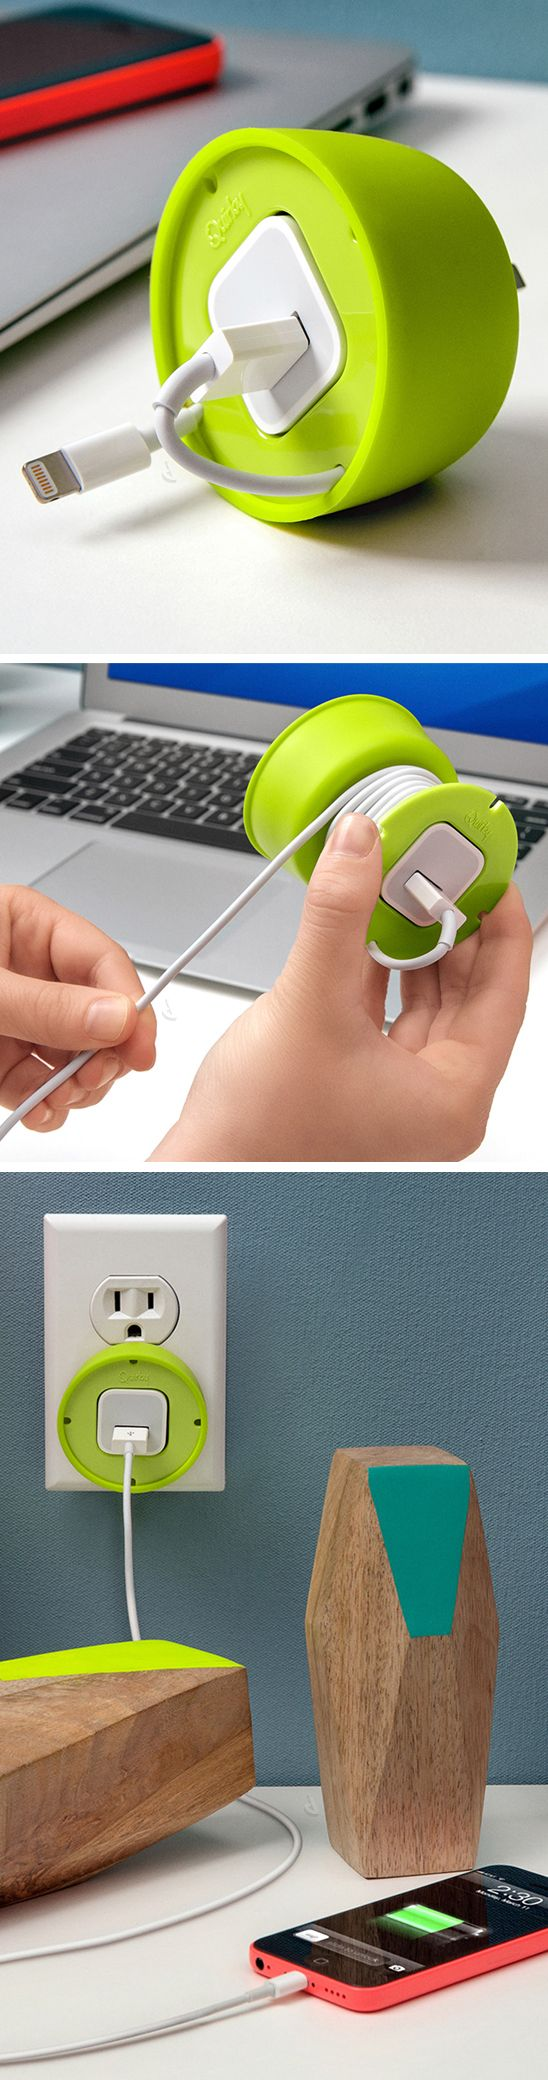 Powercurl mini green cable storage and cord organization, the silicone cover flips to either hide the cord mess or protects the prongs during transport. Genius! #product_design